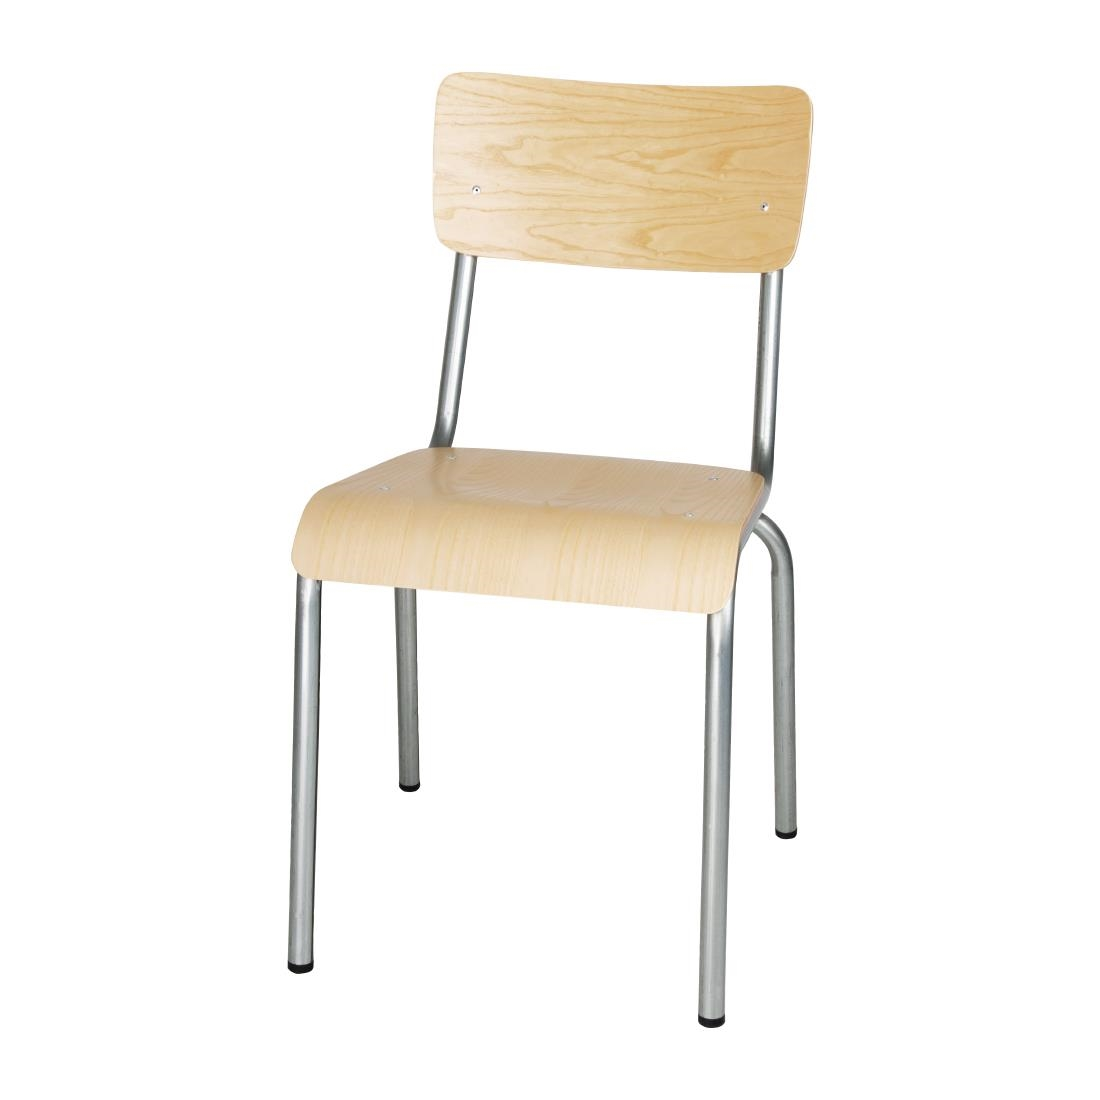 Image of Bolero Cantina Side Chairs with Wooden Seat Pad and Backrest Galvanised (Pack of 4) Pack of 4